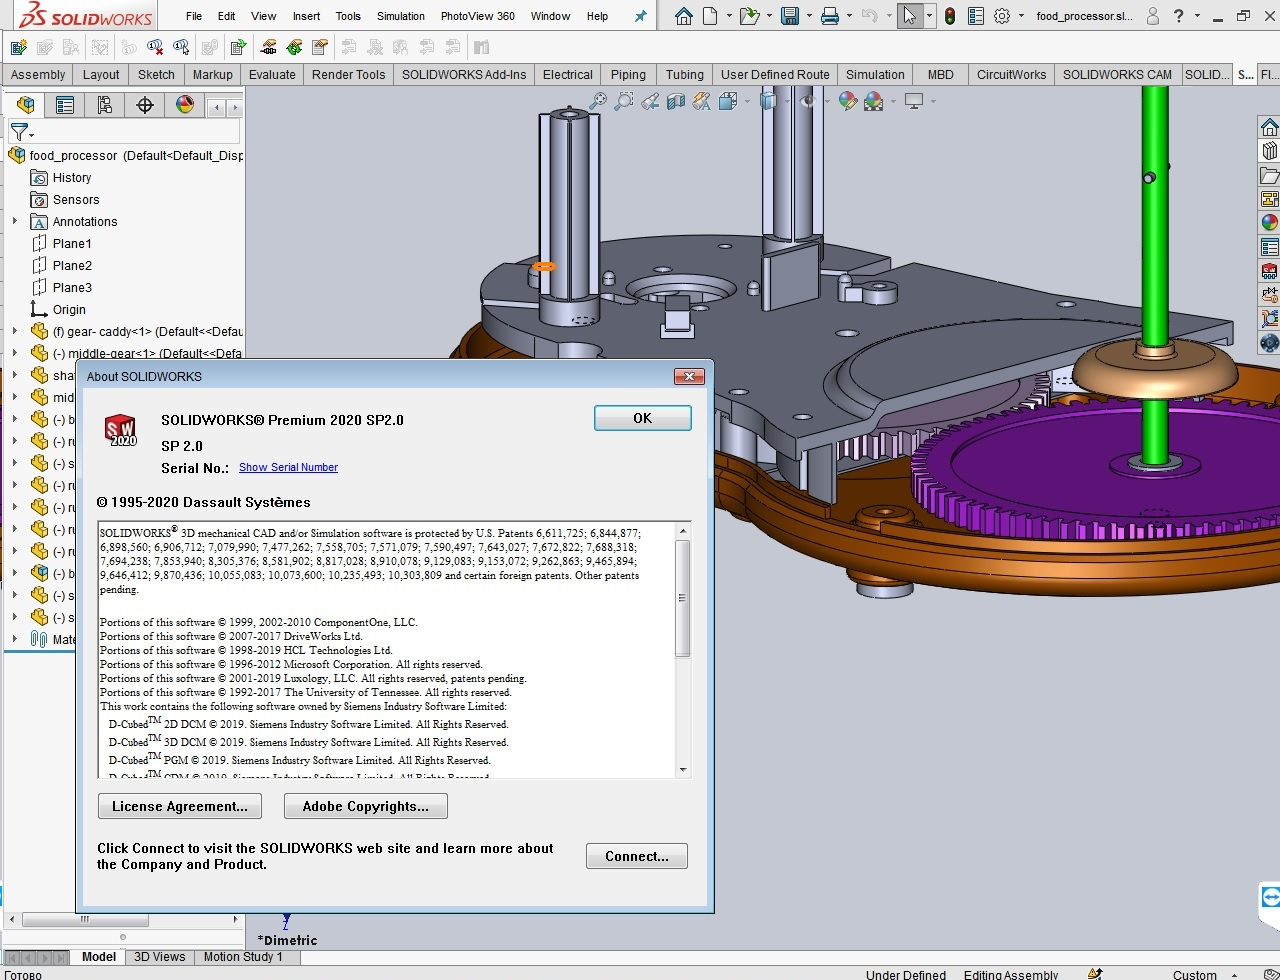 Working with SolidWorks 2020 SP2.0 full license